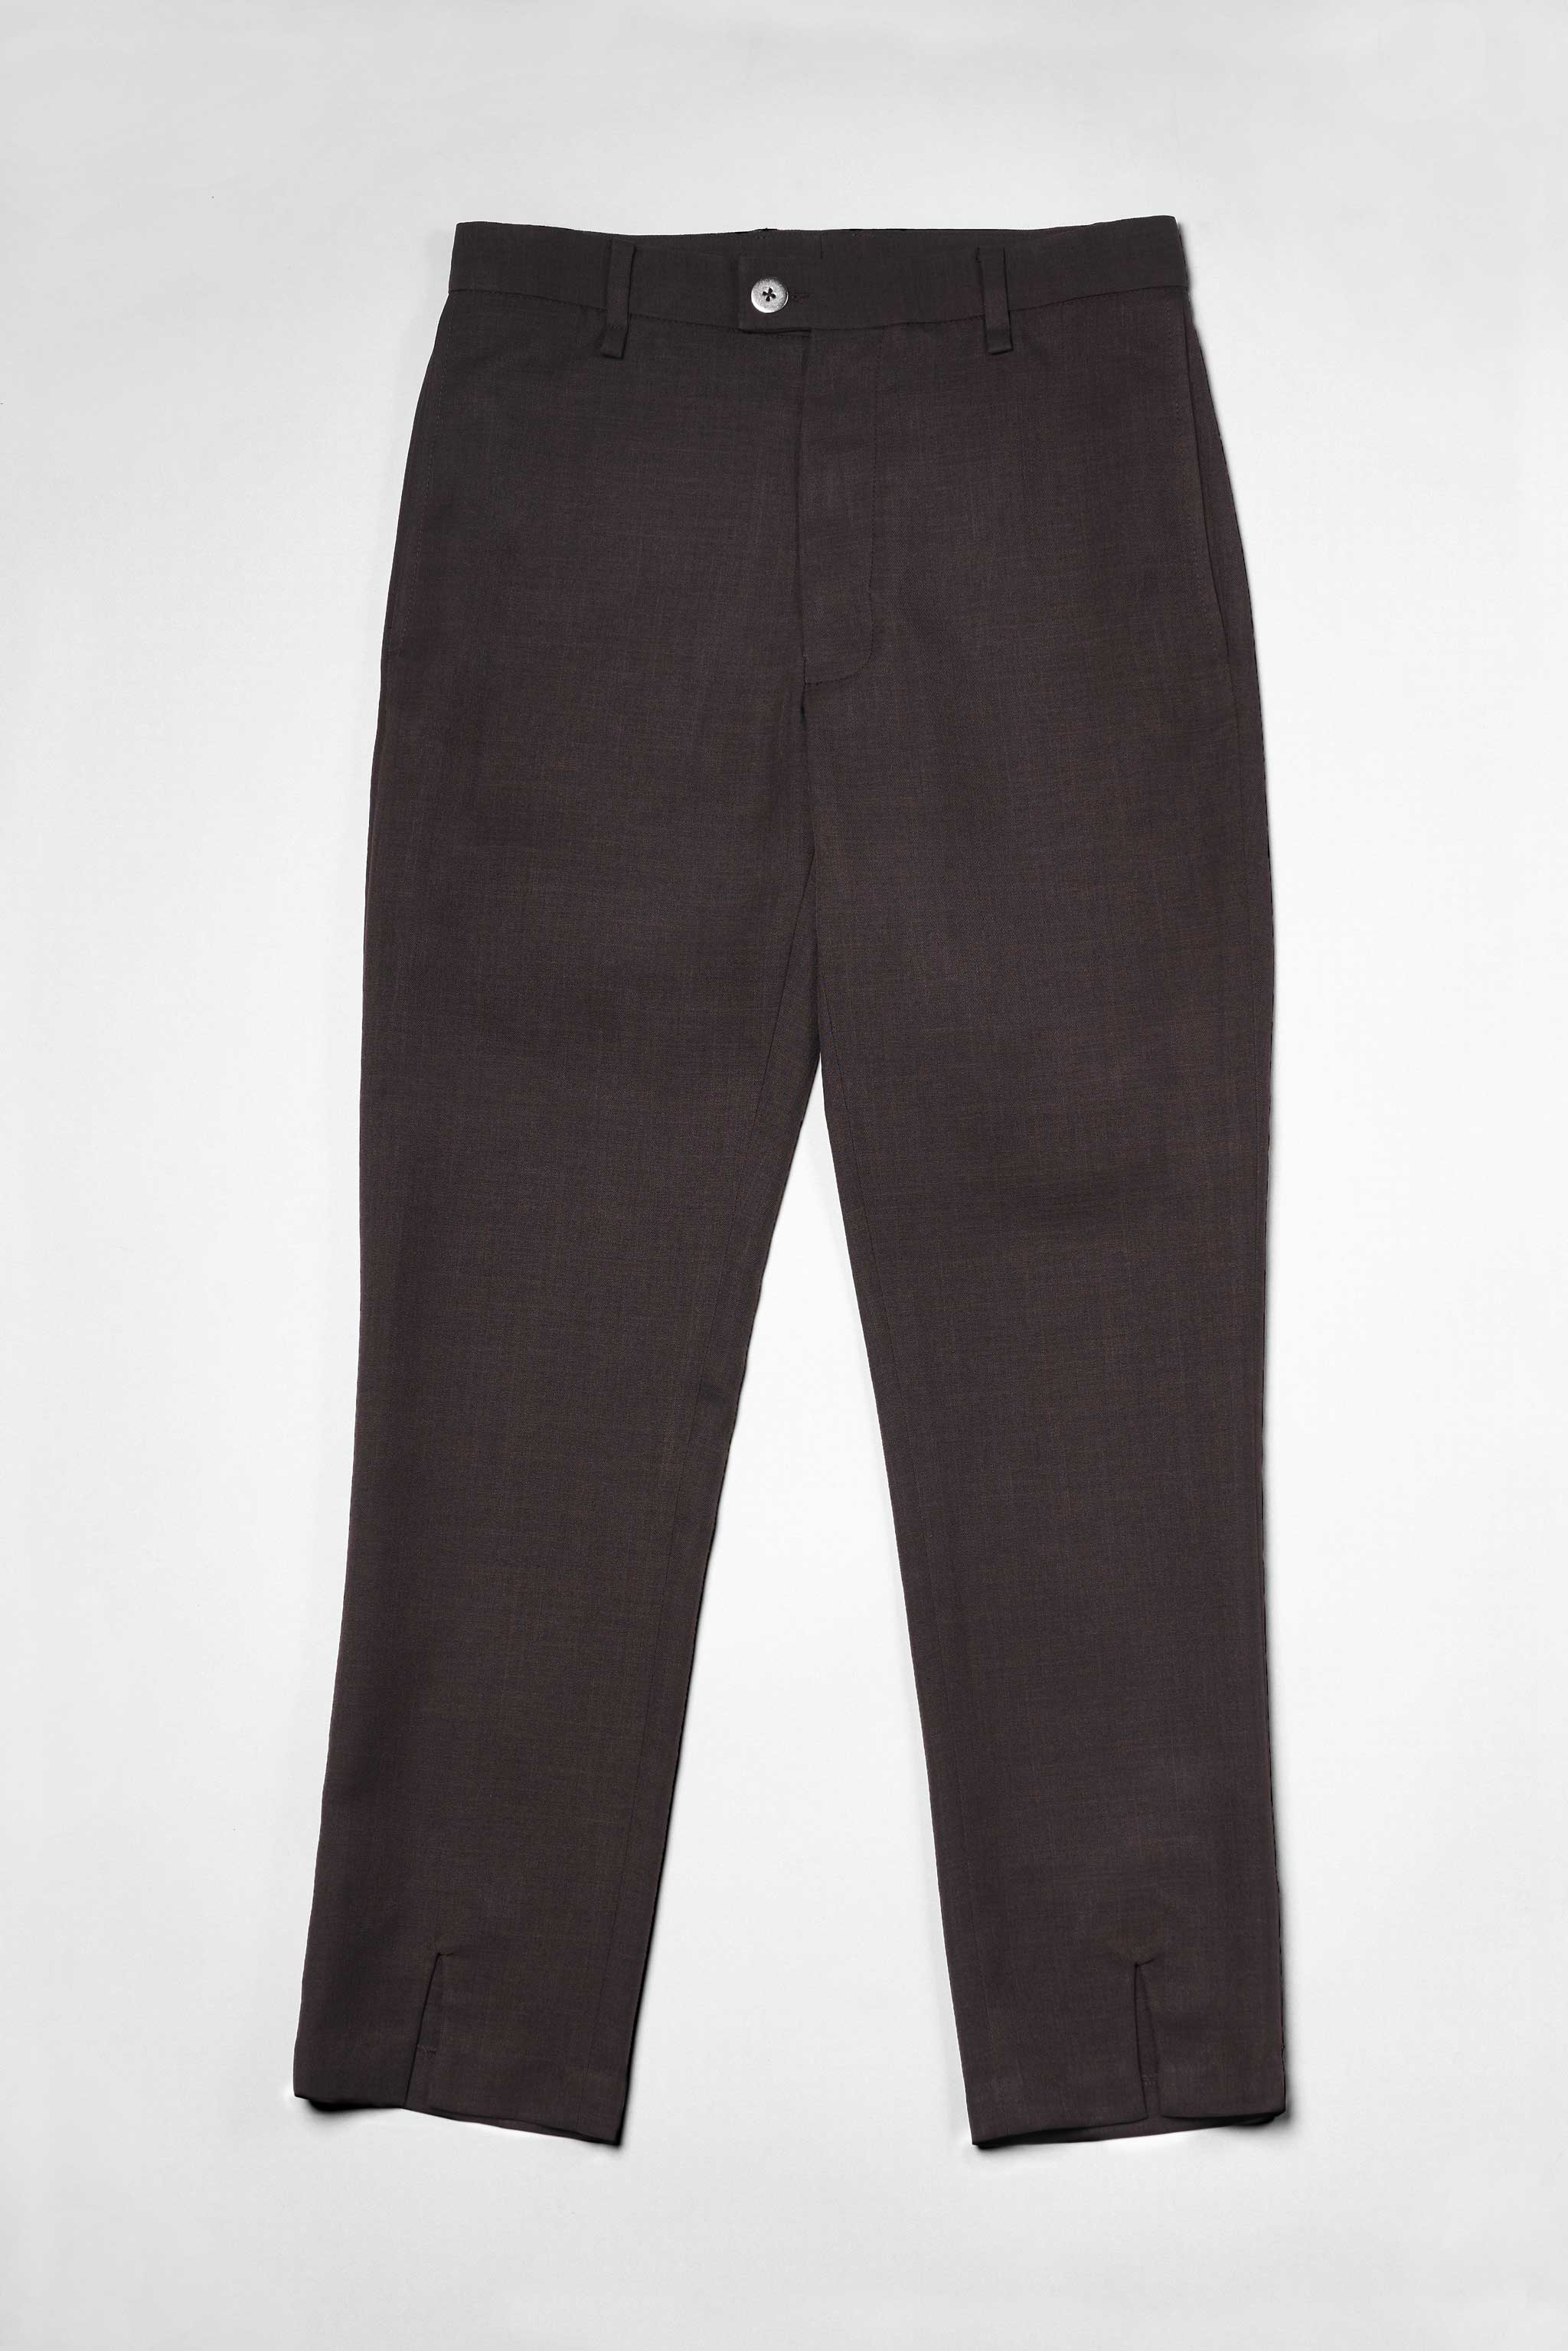 Goodfight Sunday's Best Trouser Brown